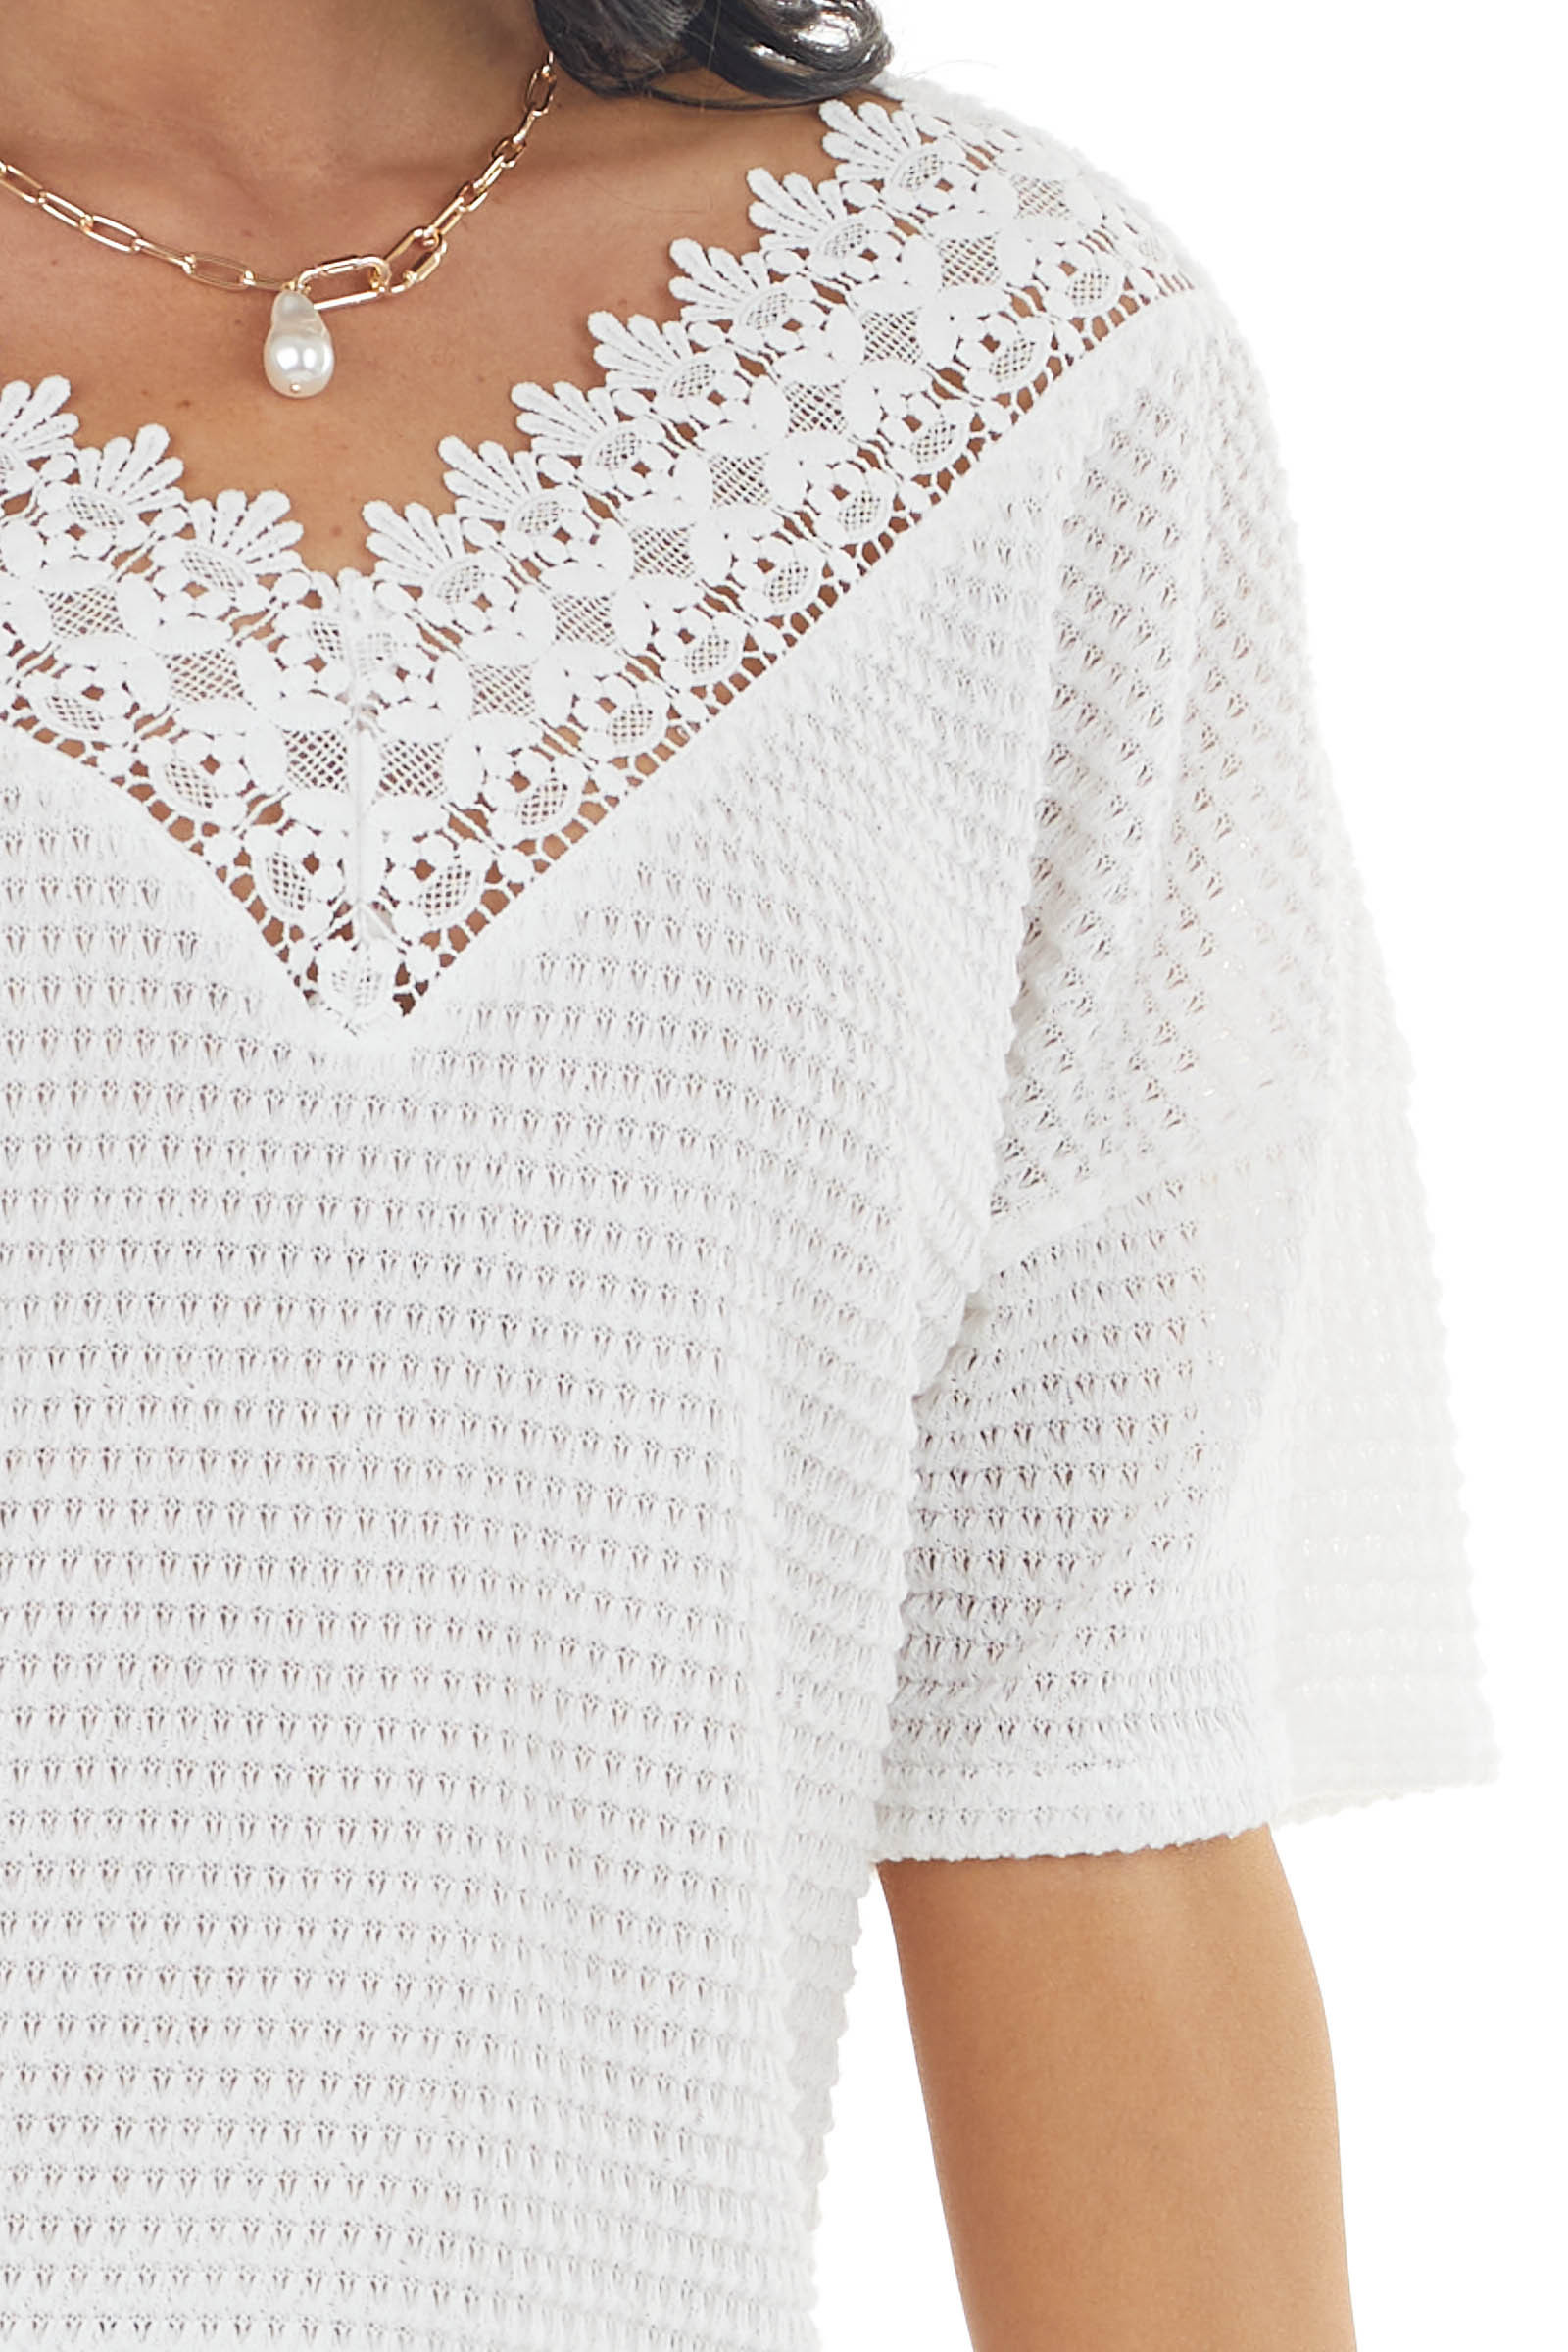 Off White Waffle Knit V Neck Short Sleeve Top with Lace